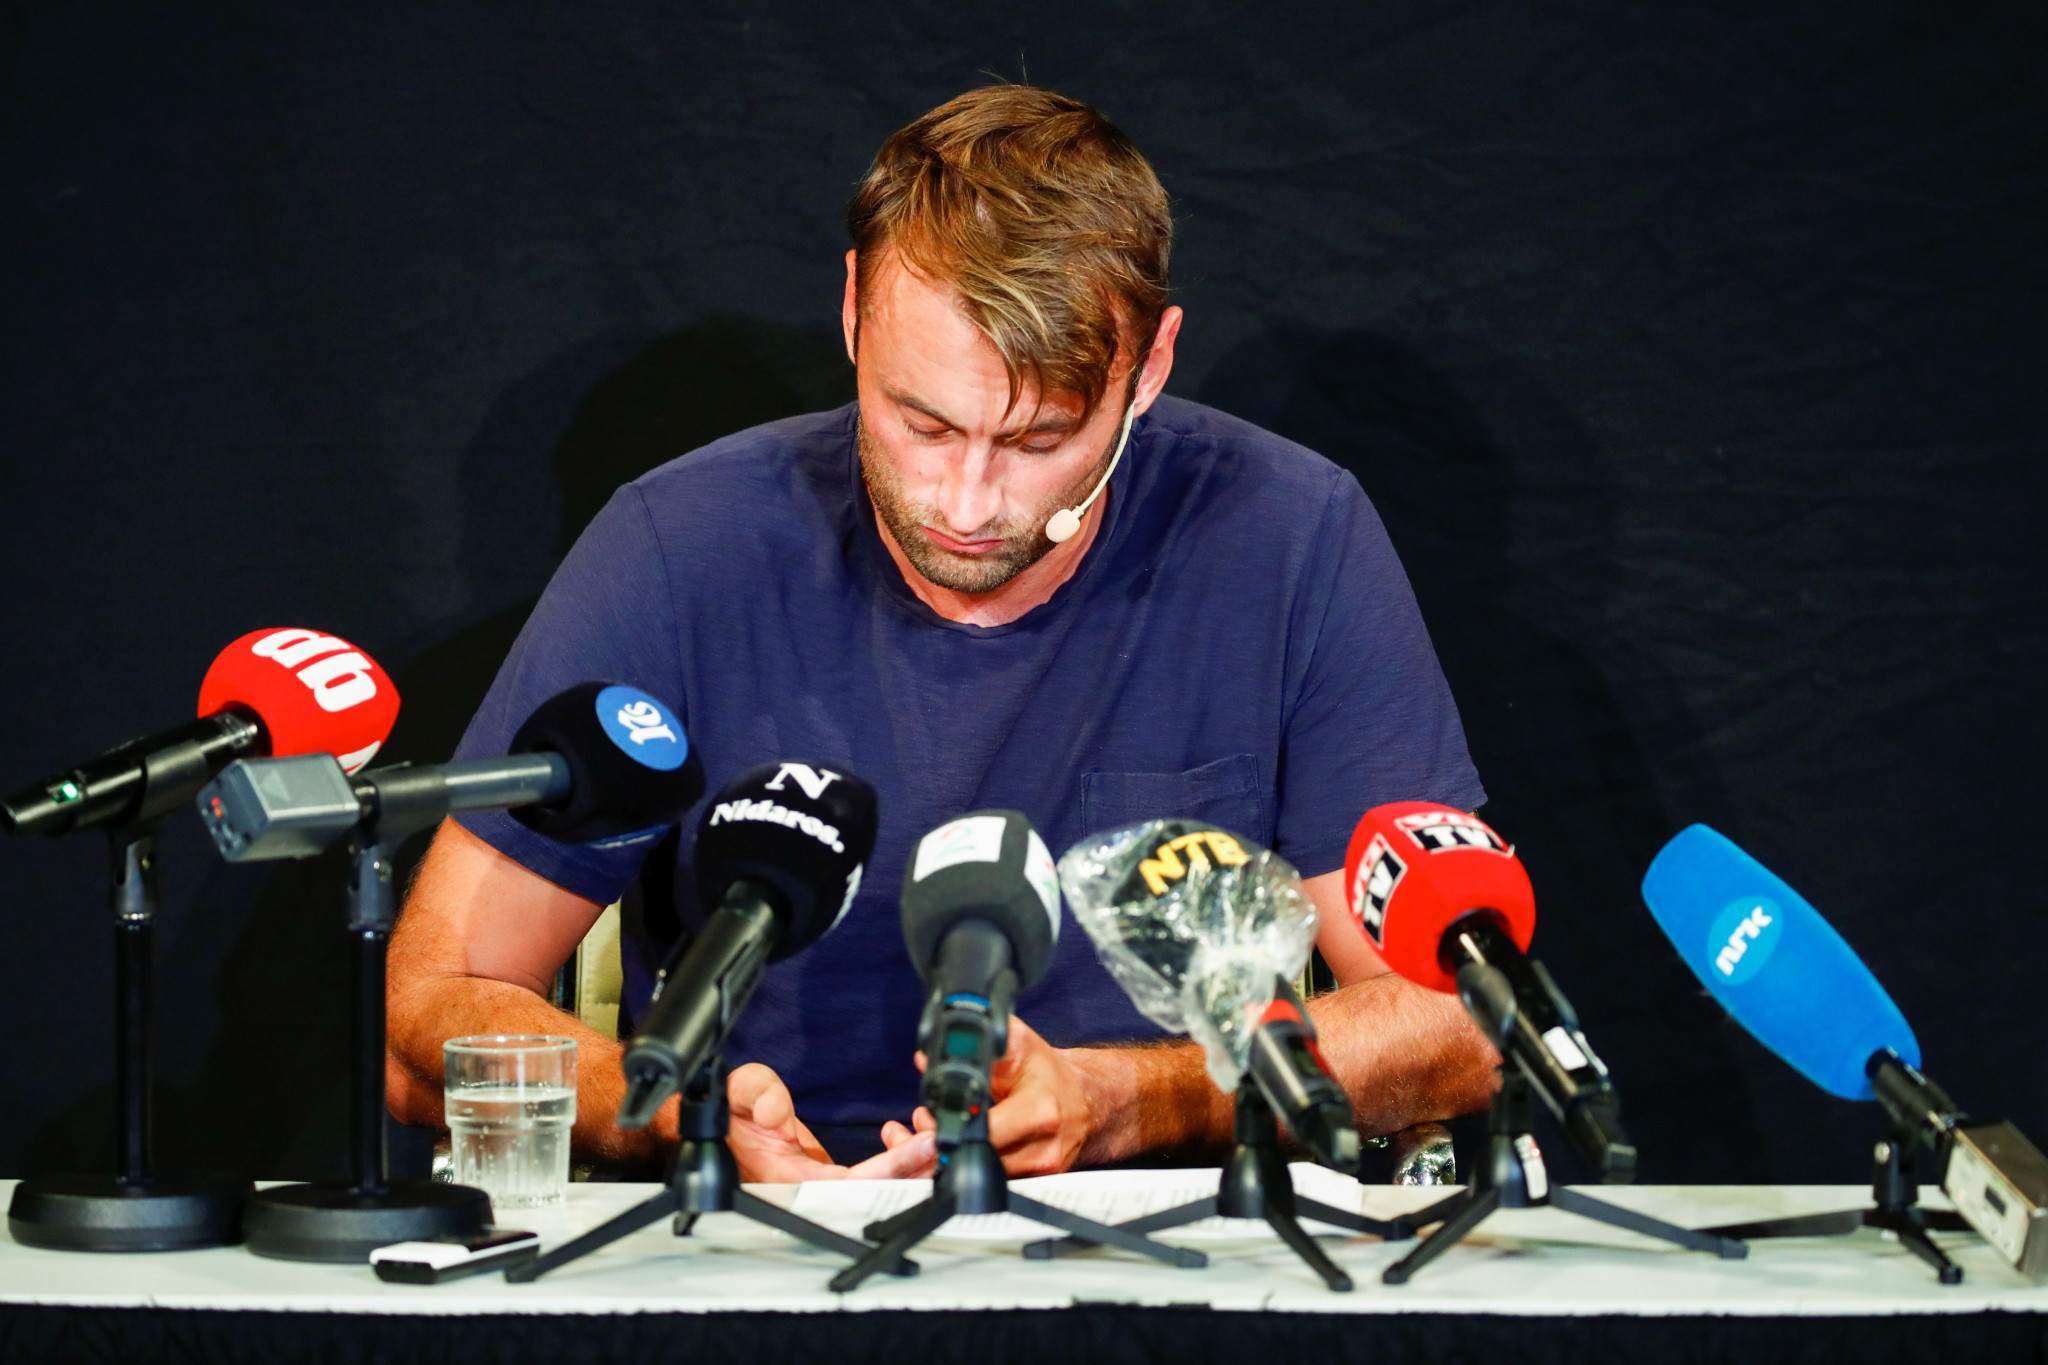 Northug awaiting prosecution decision after investigation into driving and cocaine possession